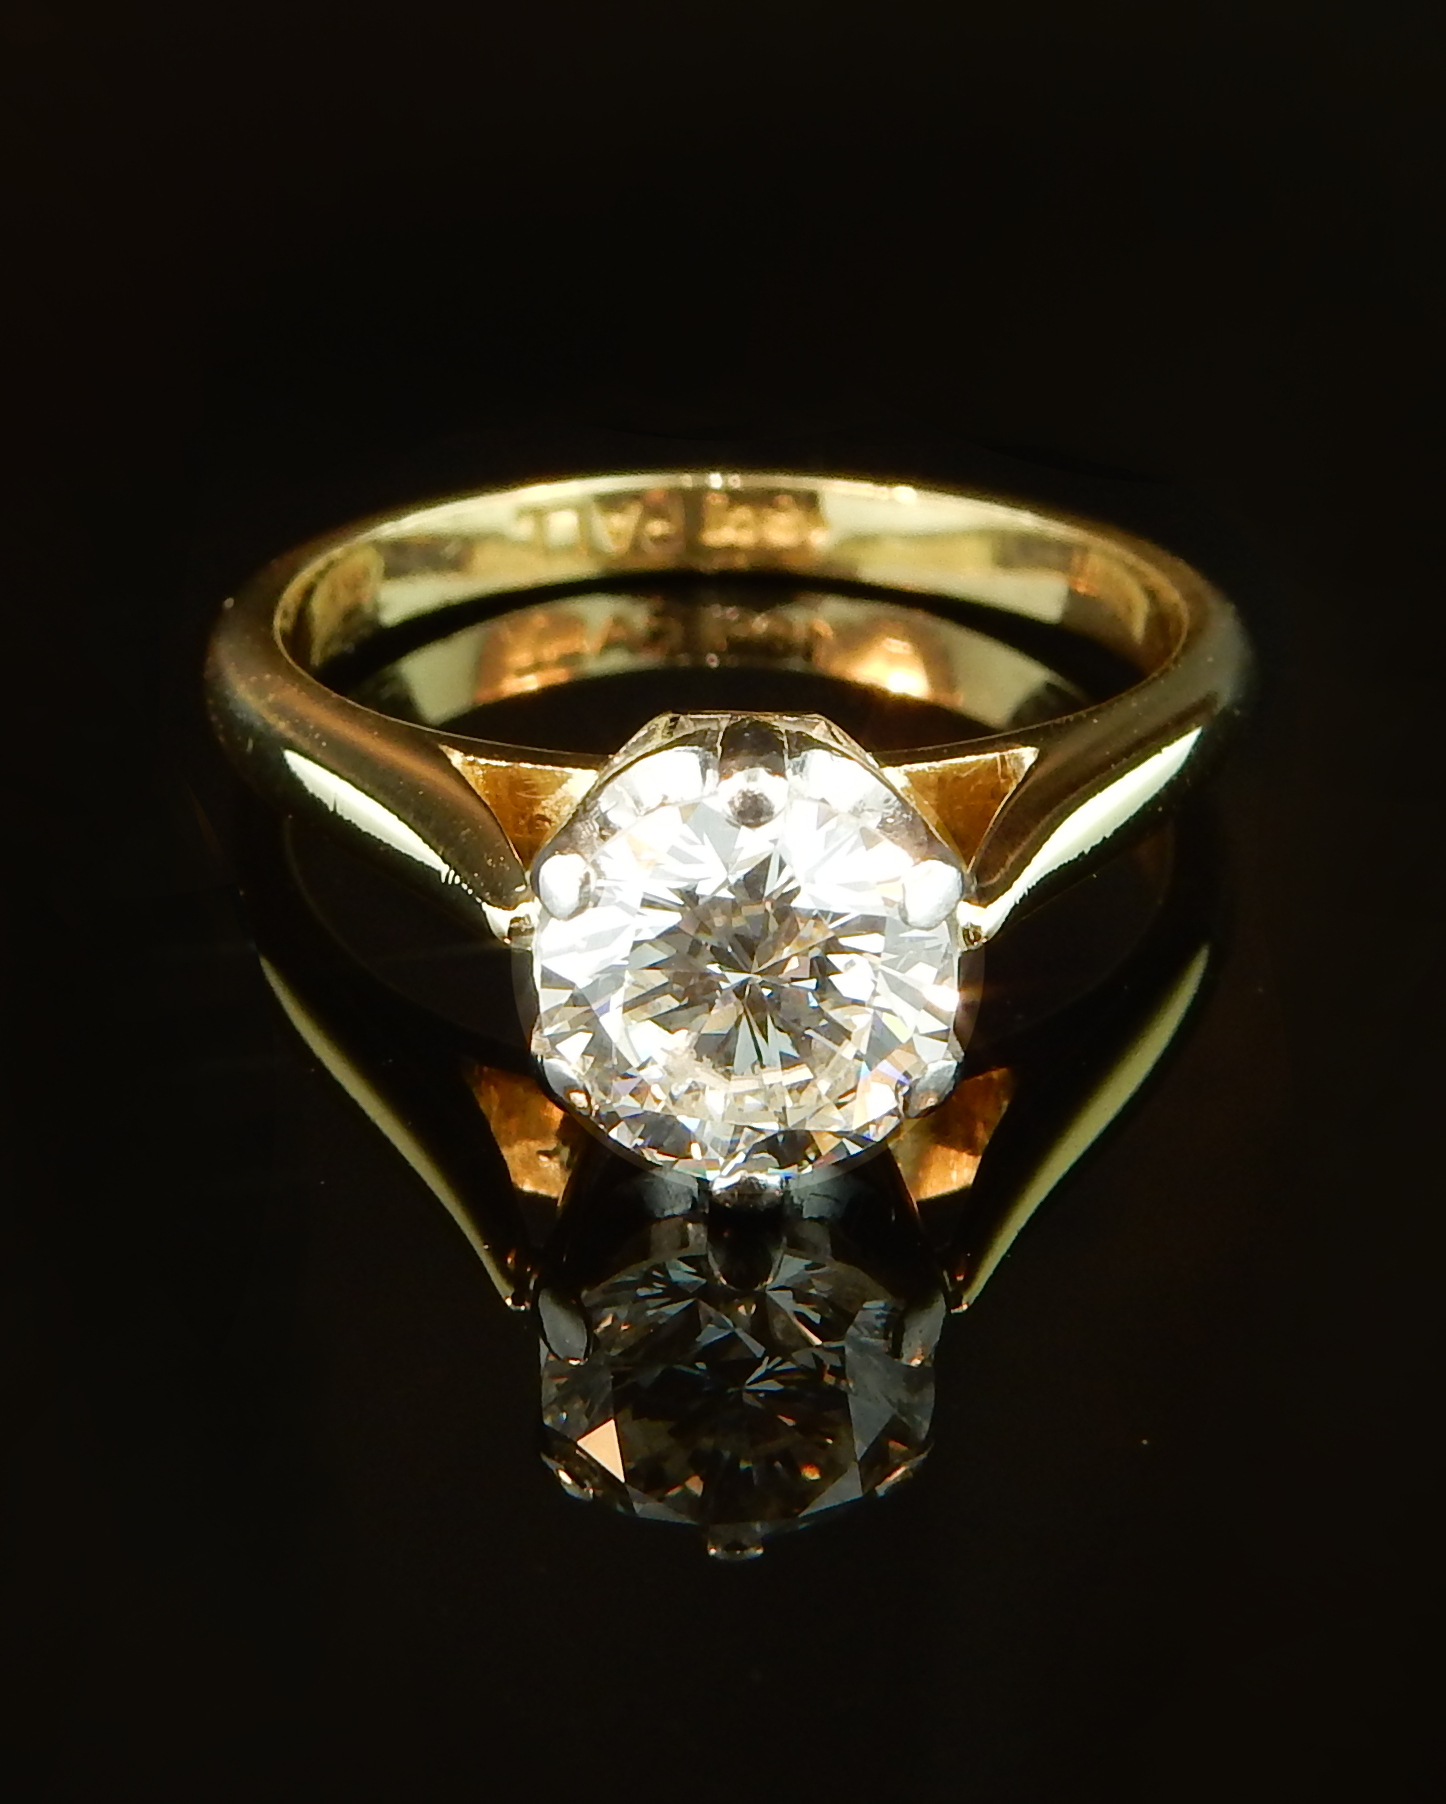 e0dd49d0f Two Tone 0.70ct Palladium and 18k Yellow Gold Solitaire. This engagement  ring ...